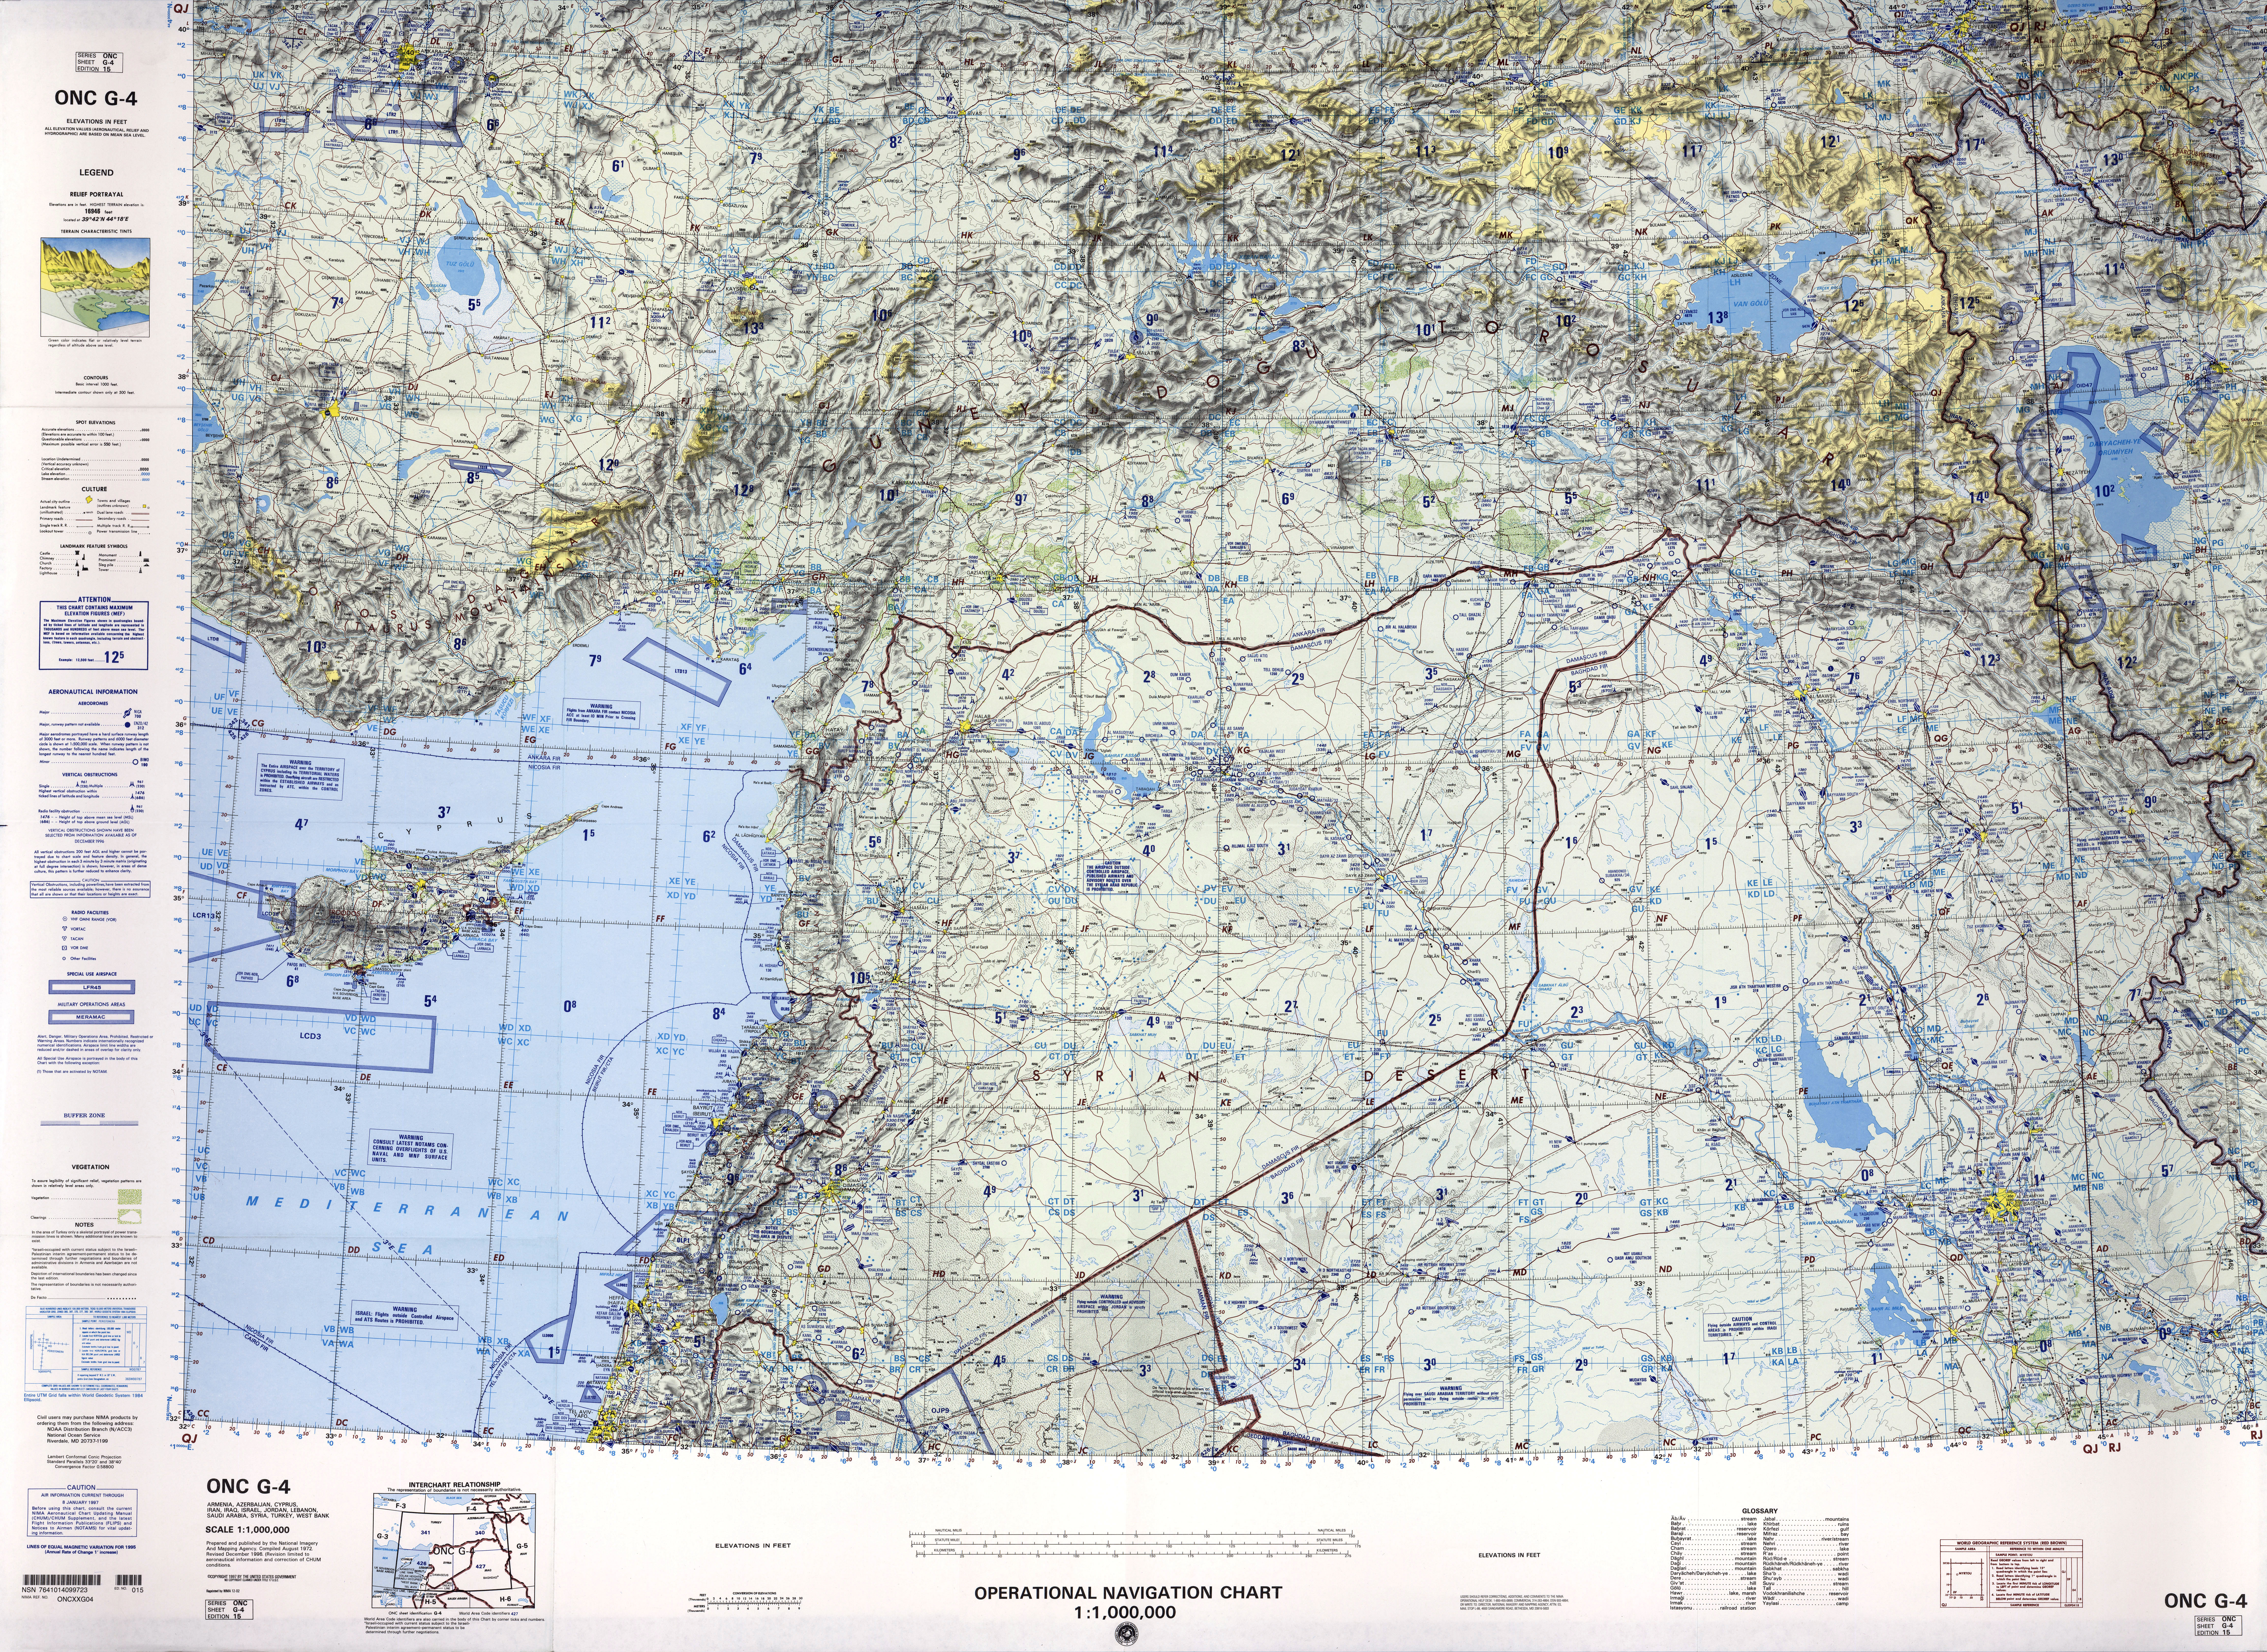 Iran islamic republic maps ecoi onc g 4 includes far northwest iran edition 15 8 january 1997 gumiabroncs Image collections